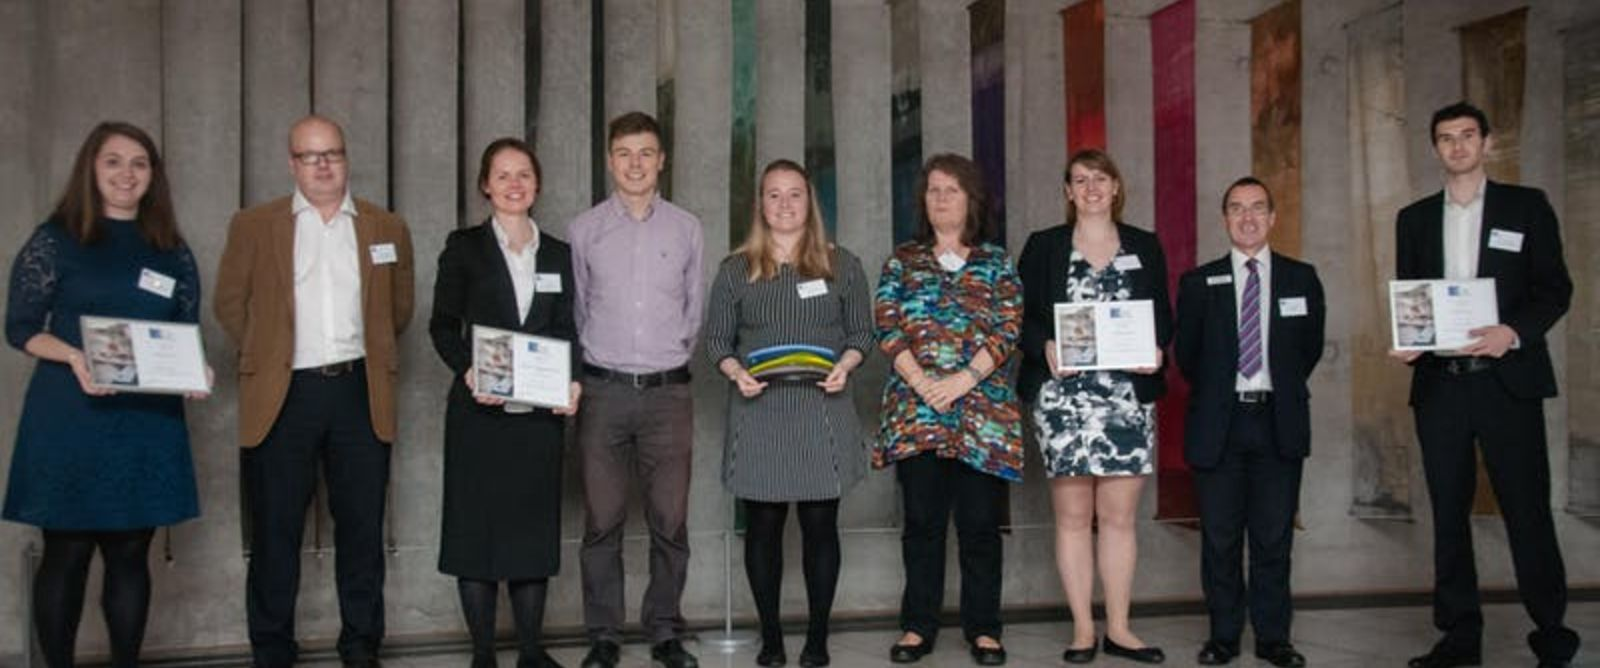 Environmental Placement Awards 2018